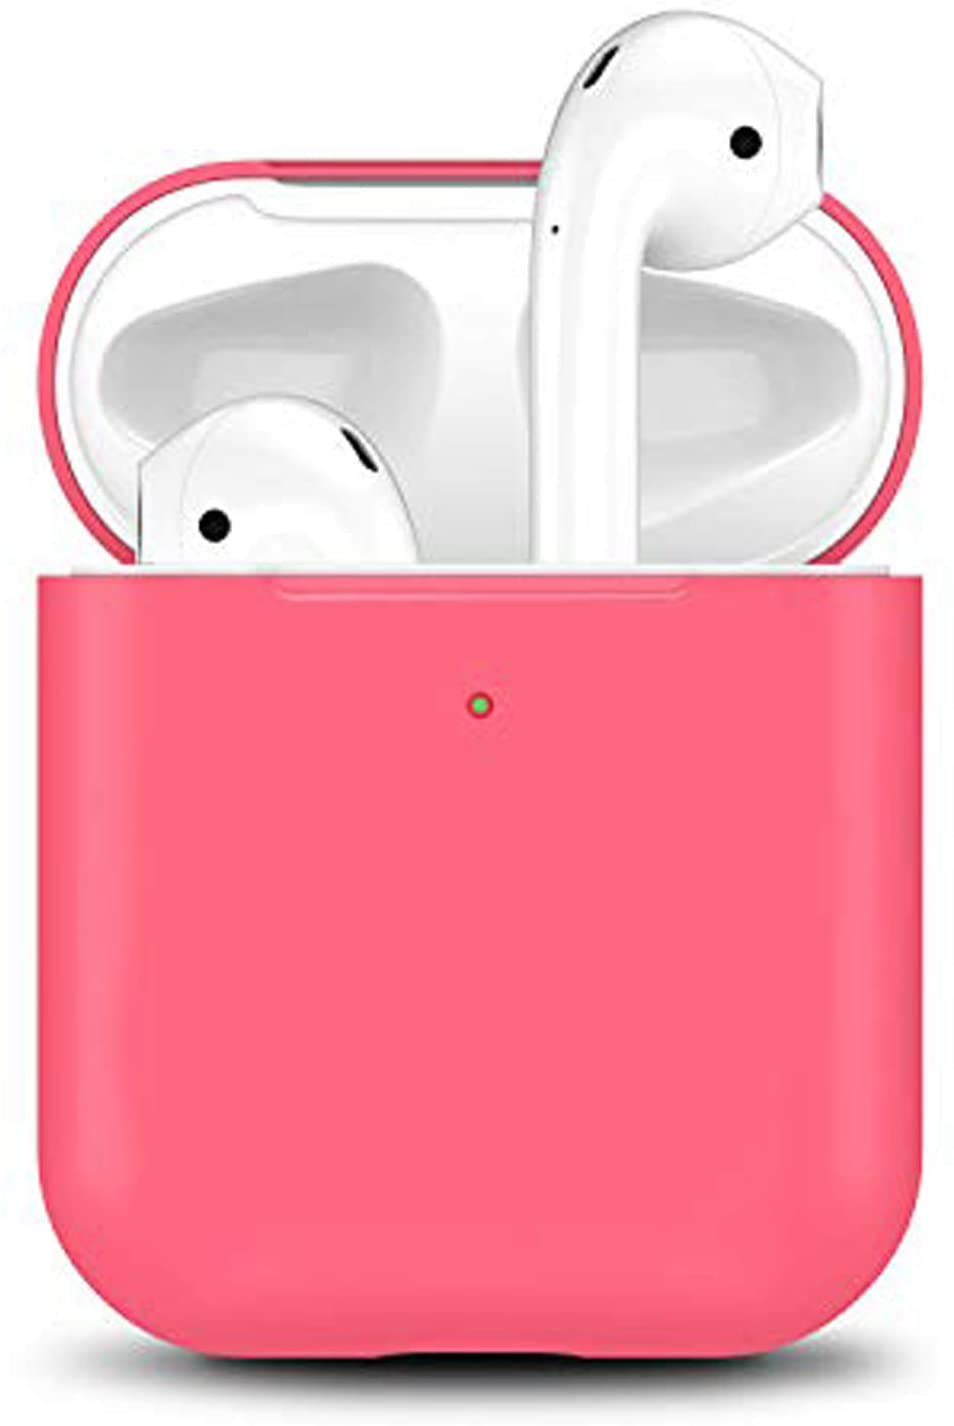 Airpods Case 2 & 1, 2019 Newest Airpod Full Protective Silicone Skin Cases Cover by Camyse Shockproof Compatible with Apple Airpods Charging Case Front LED Visible (Hibiscus)